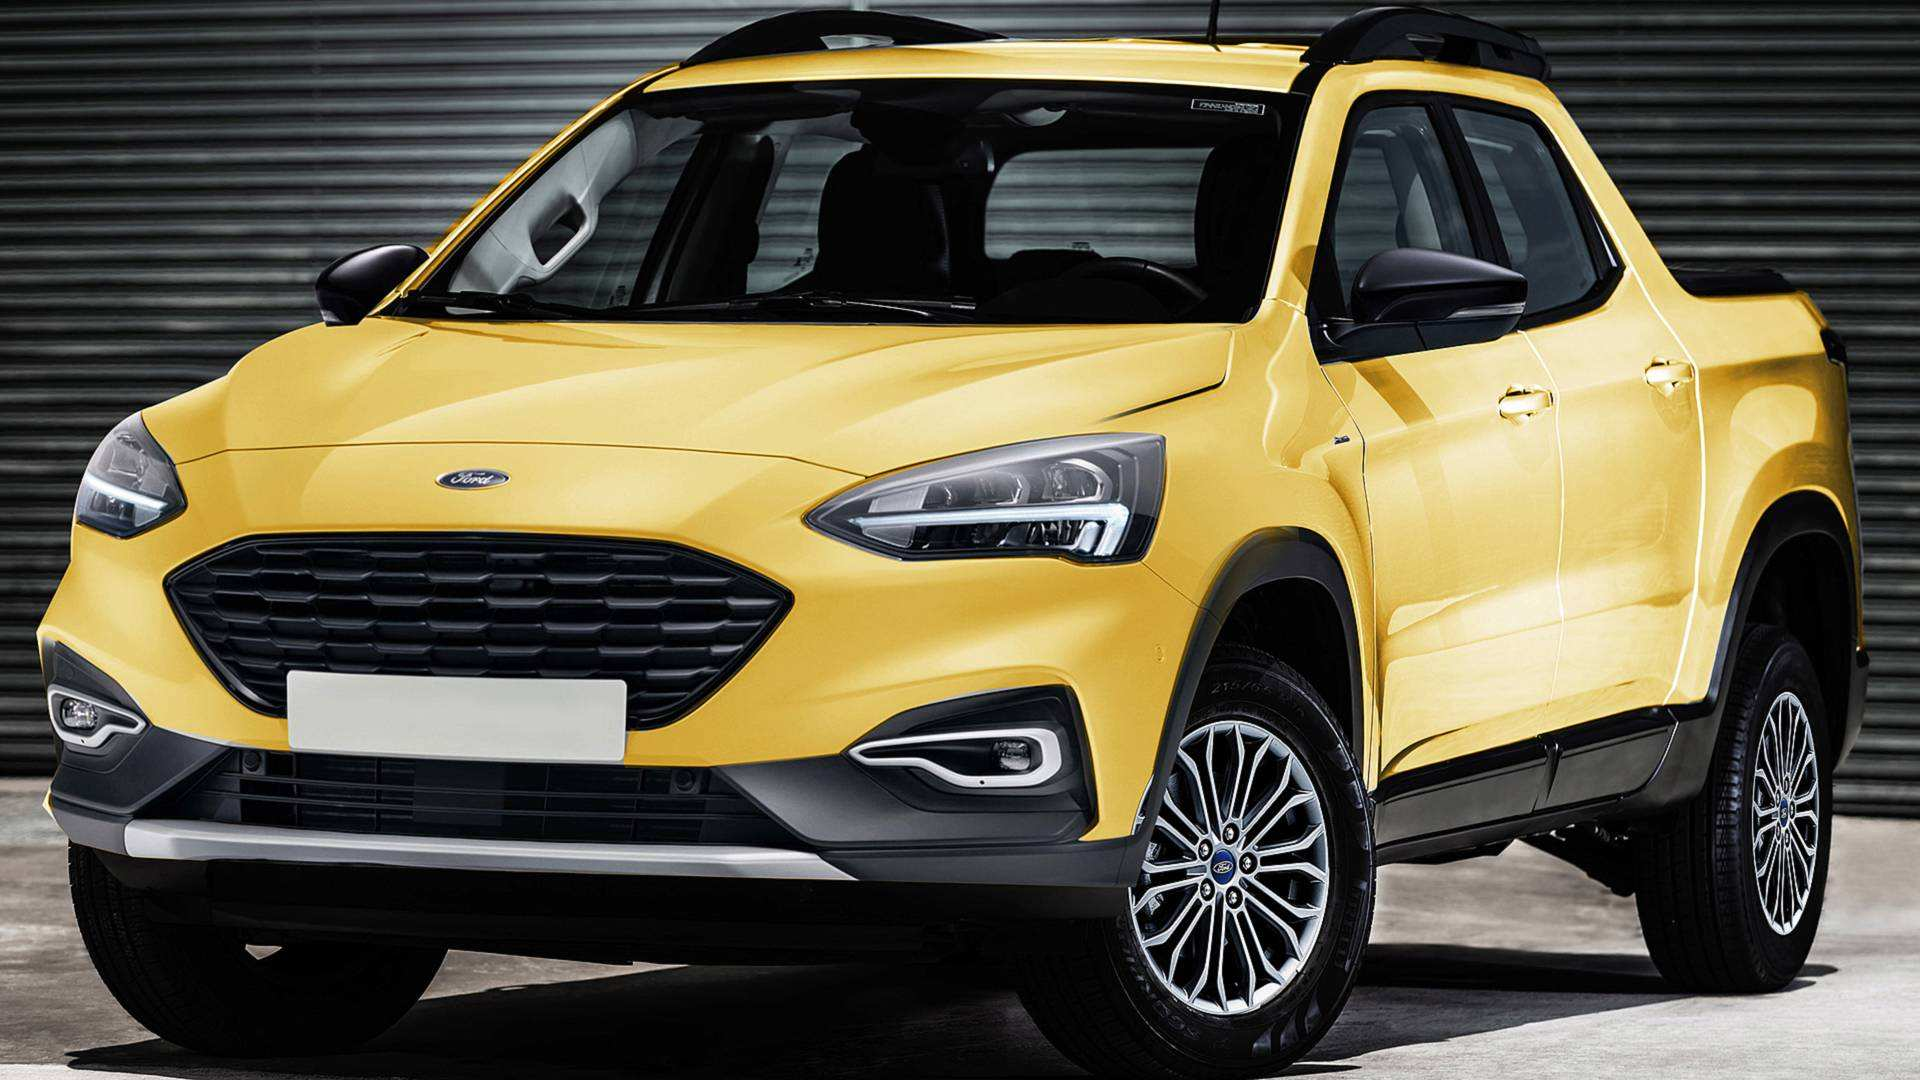 92 All New Ford Courier 2020 New Concept by Ford Courier 2020